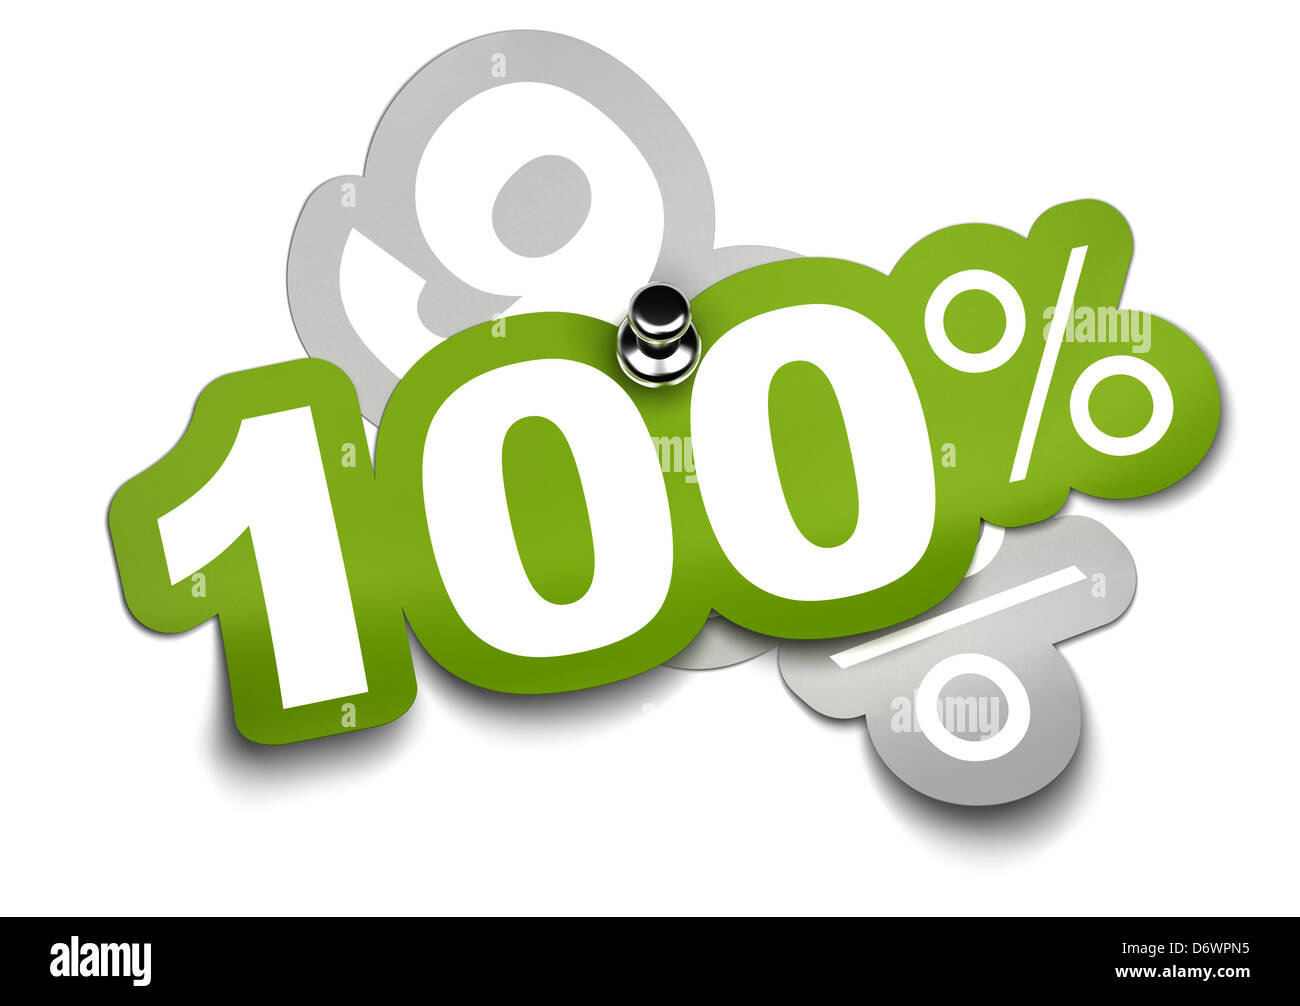 one hundred percent sticker fixed onto a ninety sticker by a thumbtack, color is green over a white background - Stock Image